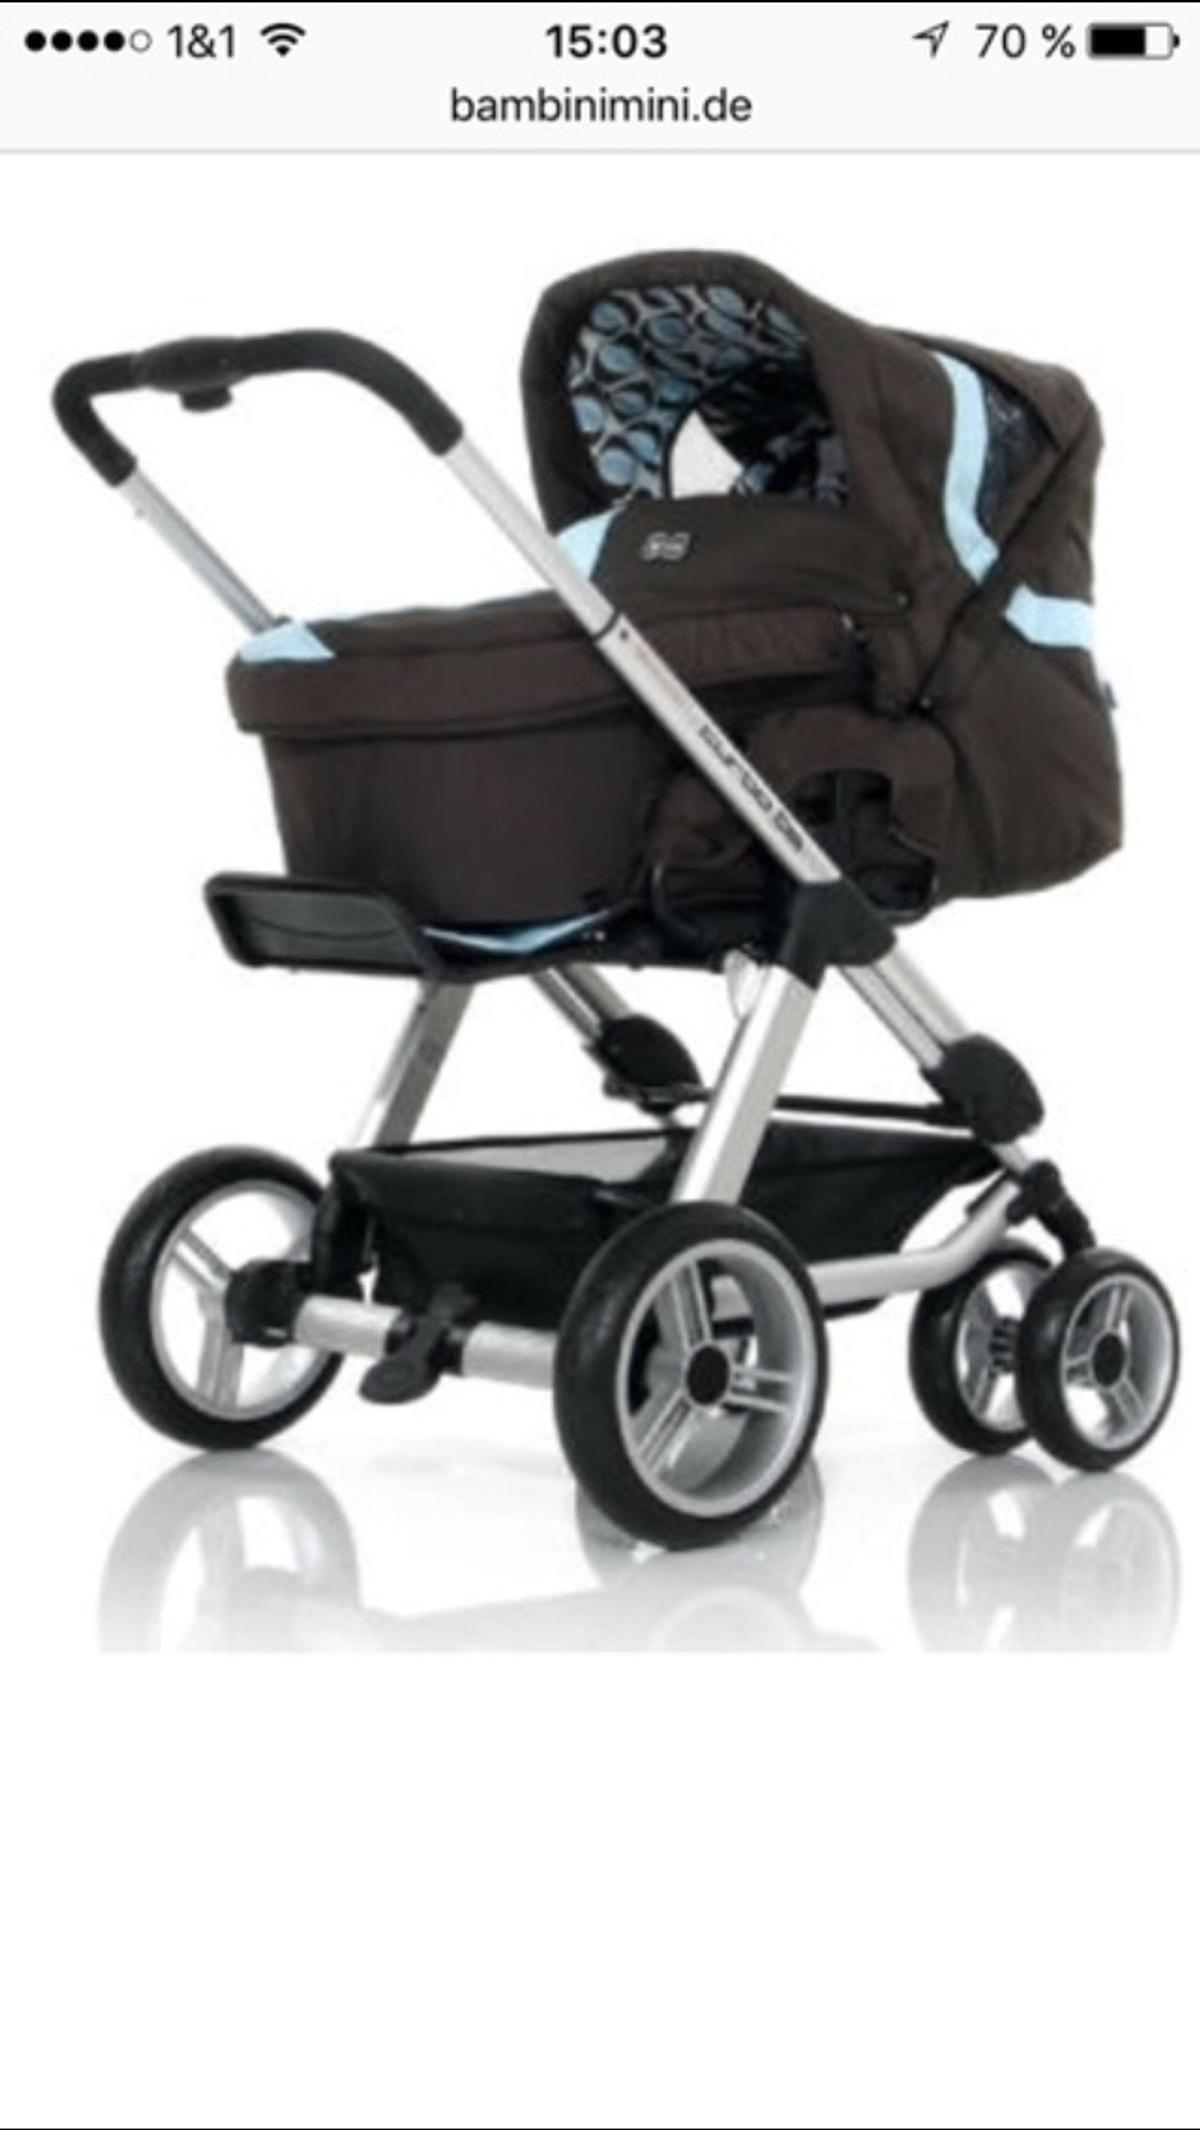 Abc Turbo 6 Zum Buggy Umbauen Kinderwagen Abc Turbo 6s